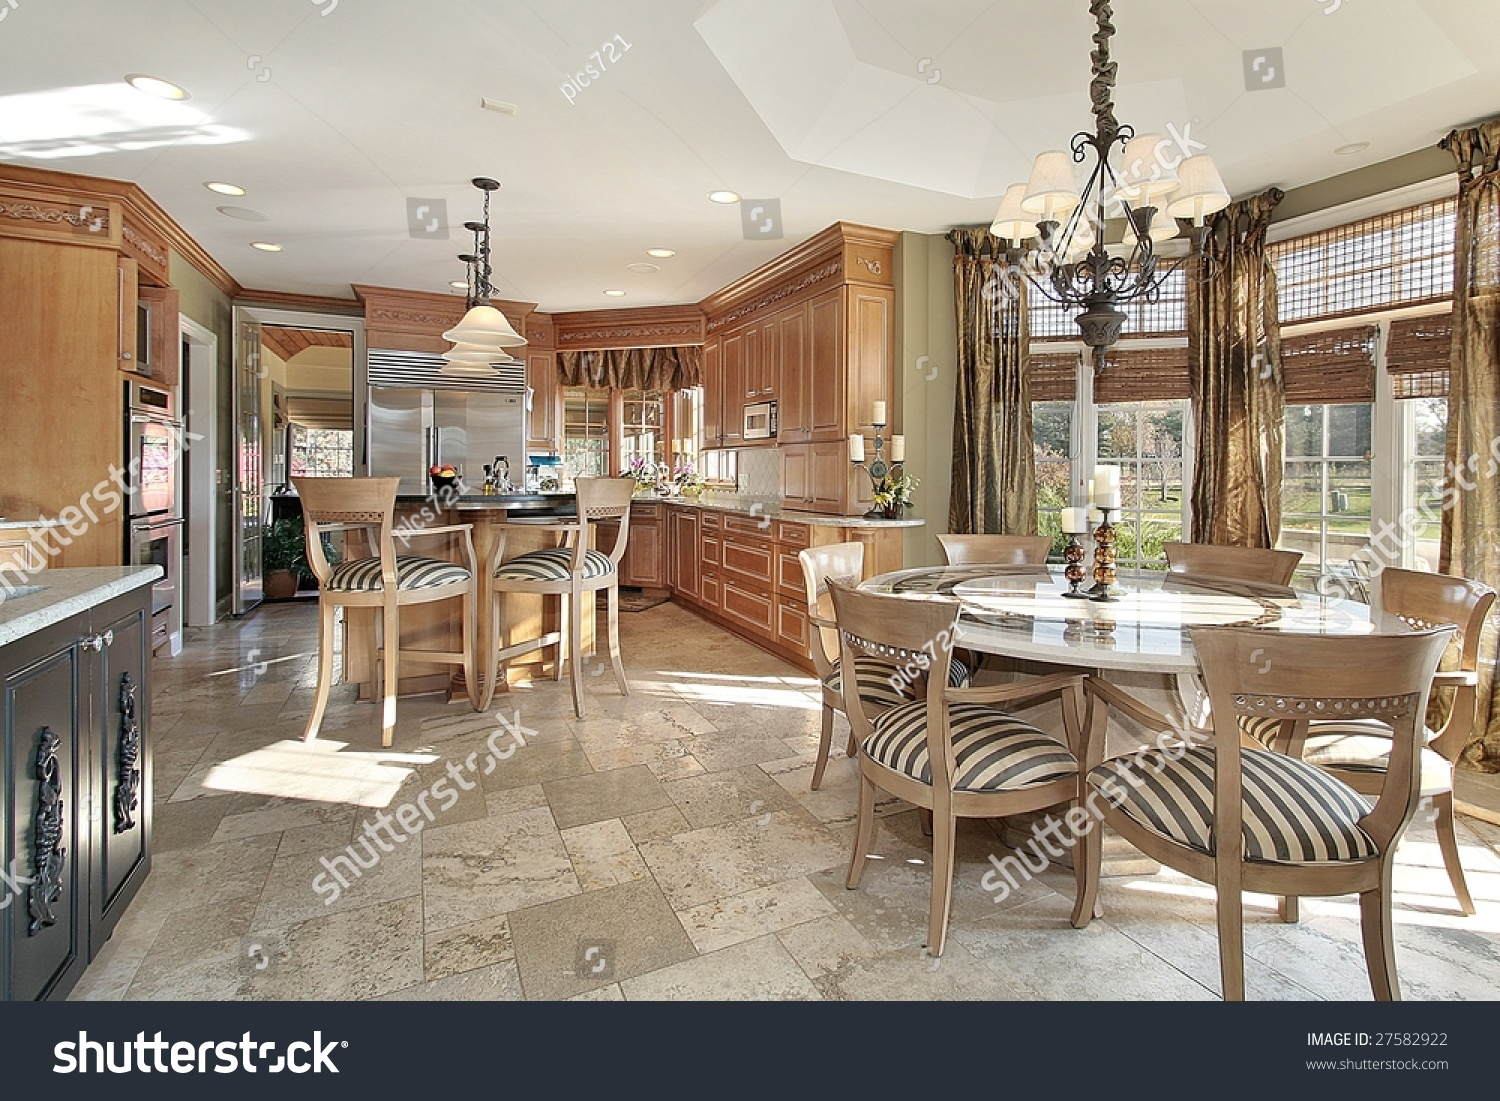 Kitchen With Island And Eating Area Stock Photo 27582922